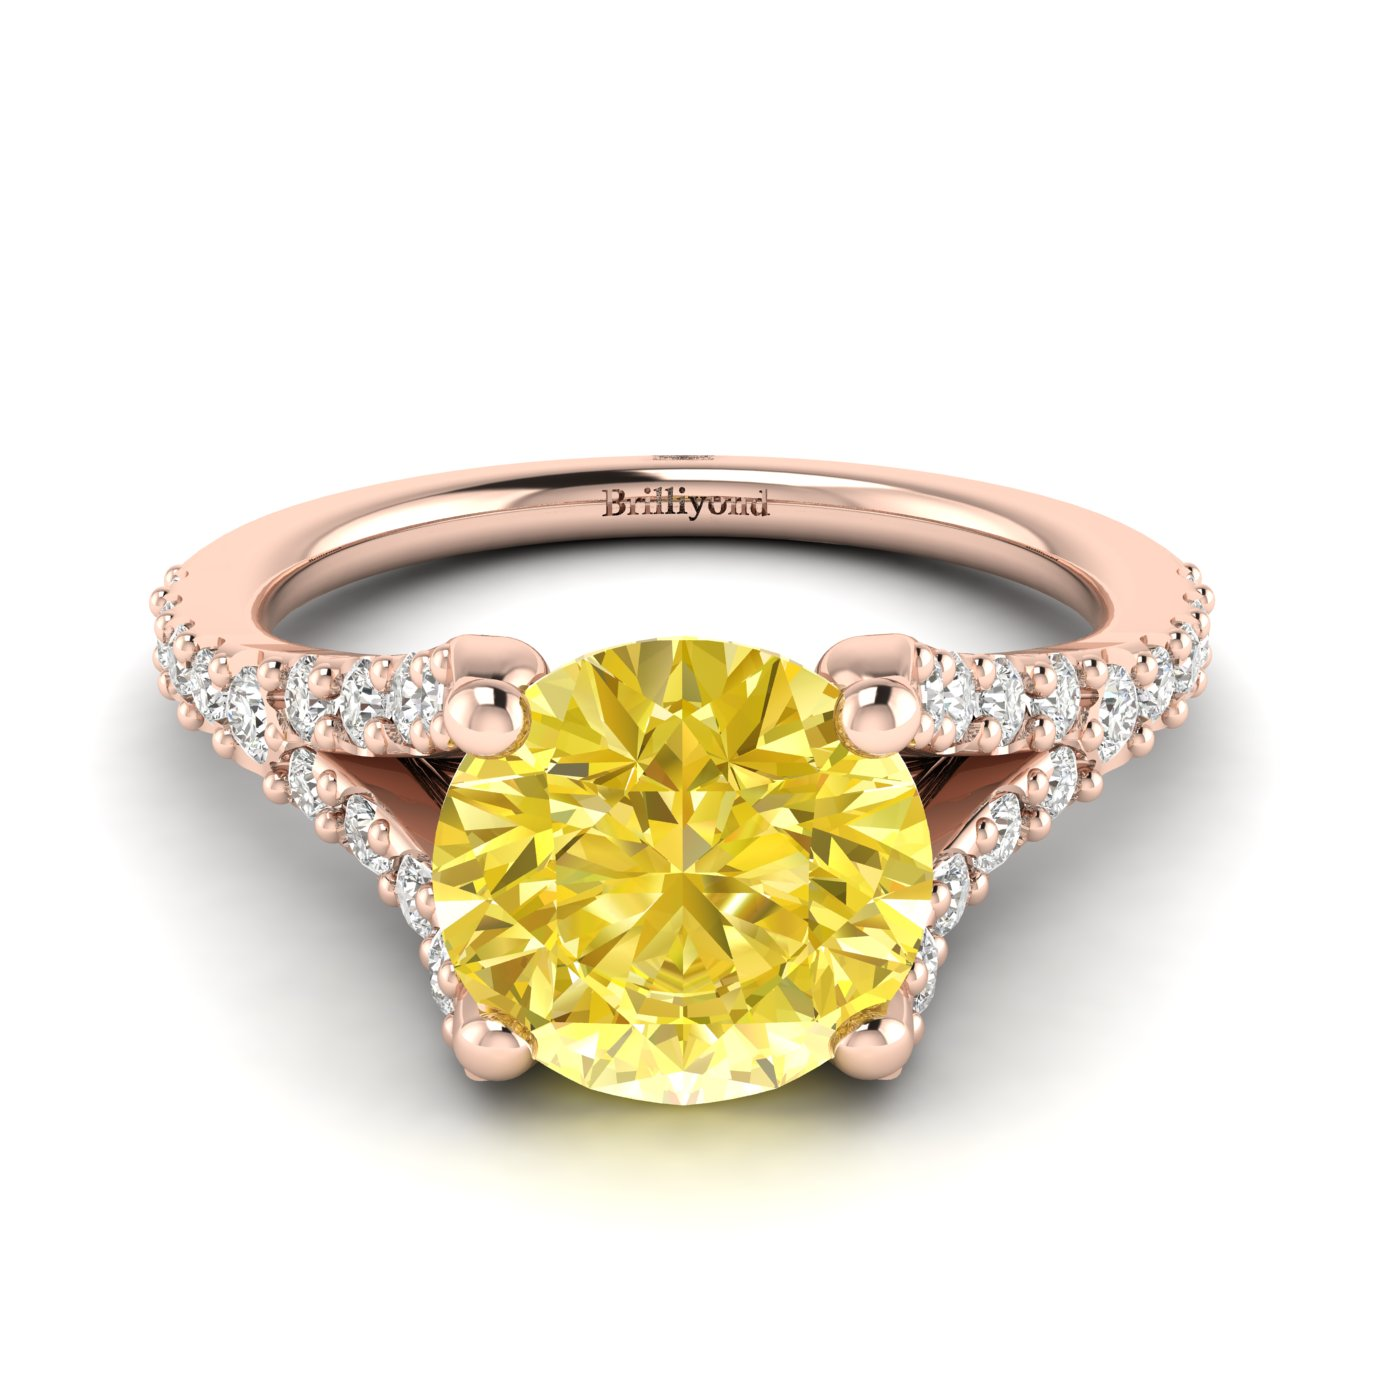 Yellow Ceylon sapphire engagement ring with pavé split shank set white created diamond accent stones.